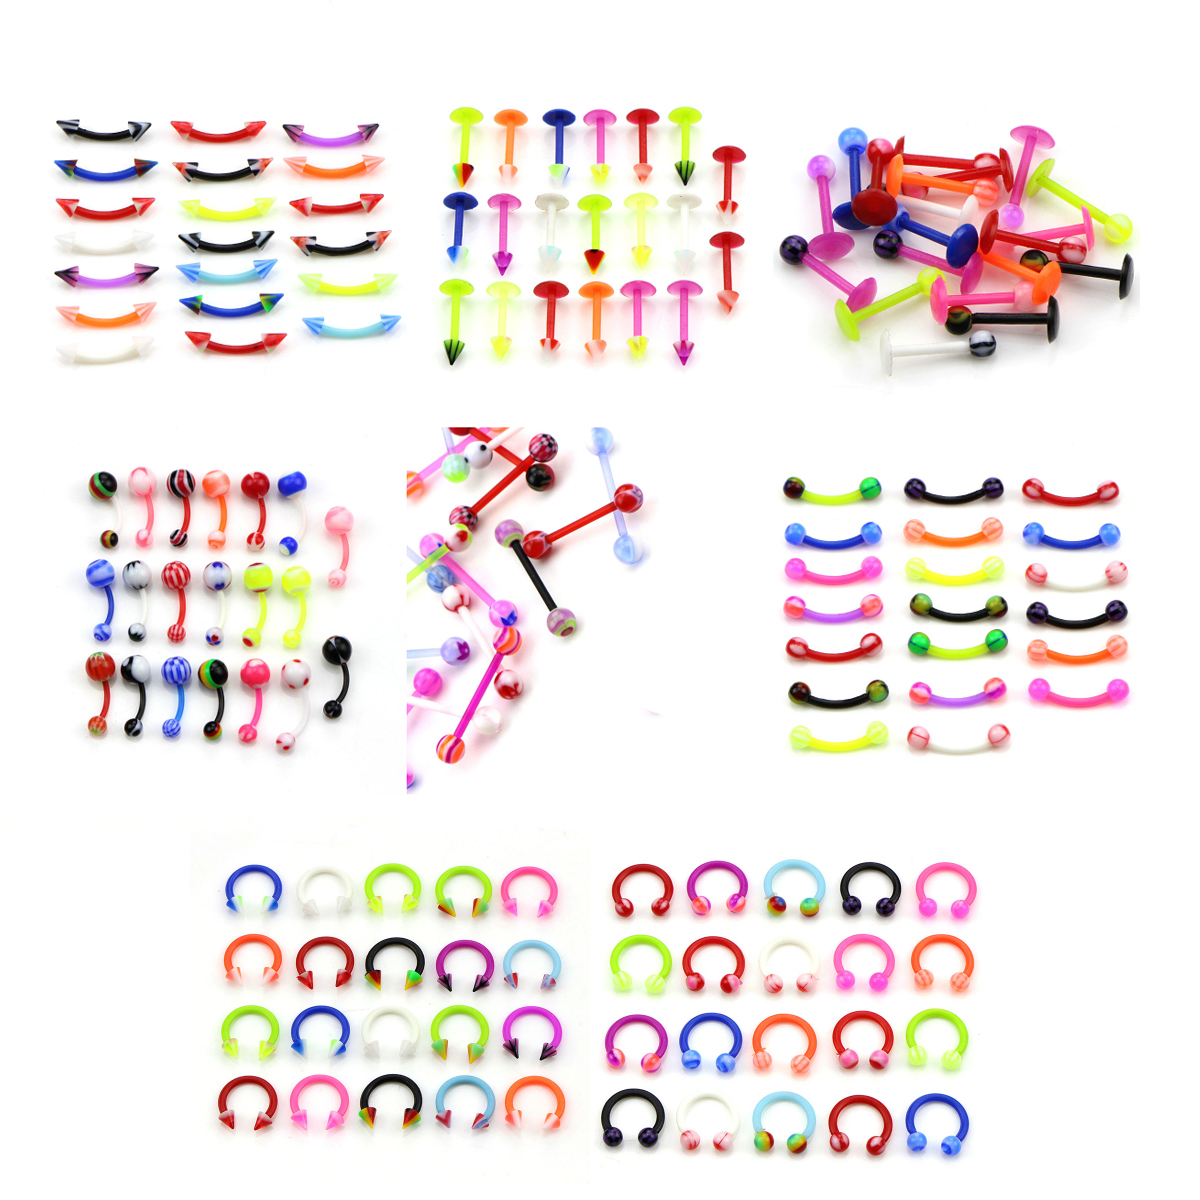 20Pcs/set Silicone Belly Piercing Navel Flexible Bar Balls Piercing Nombril Stud Earring Fashion Body Jewelry